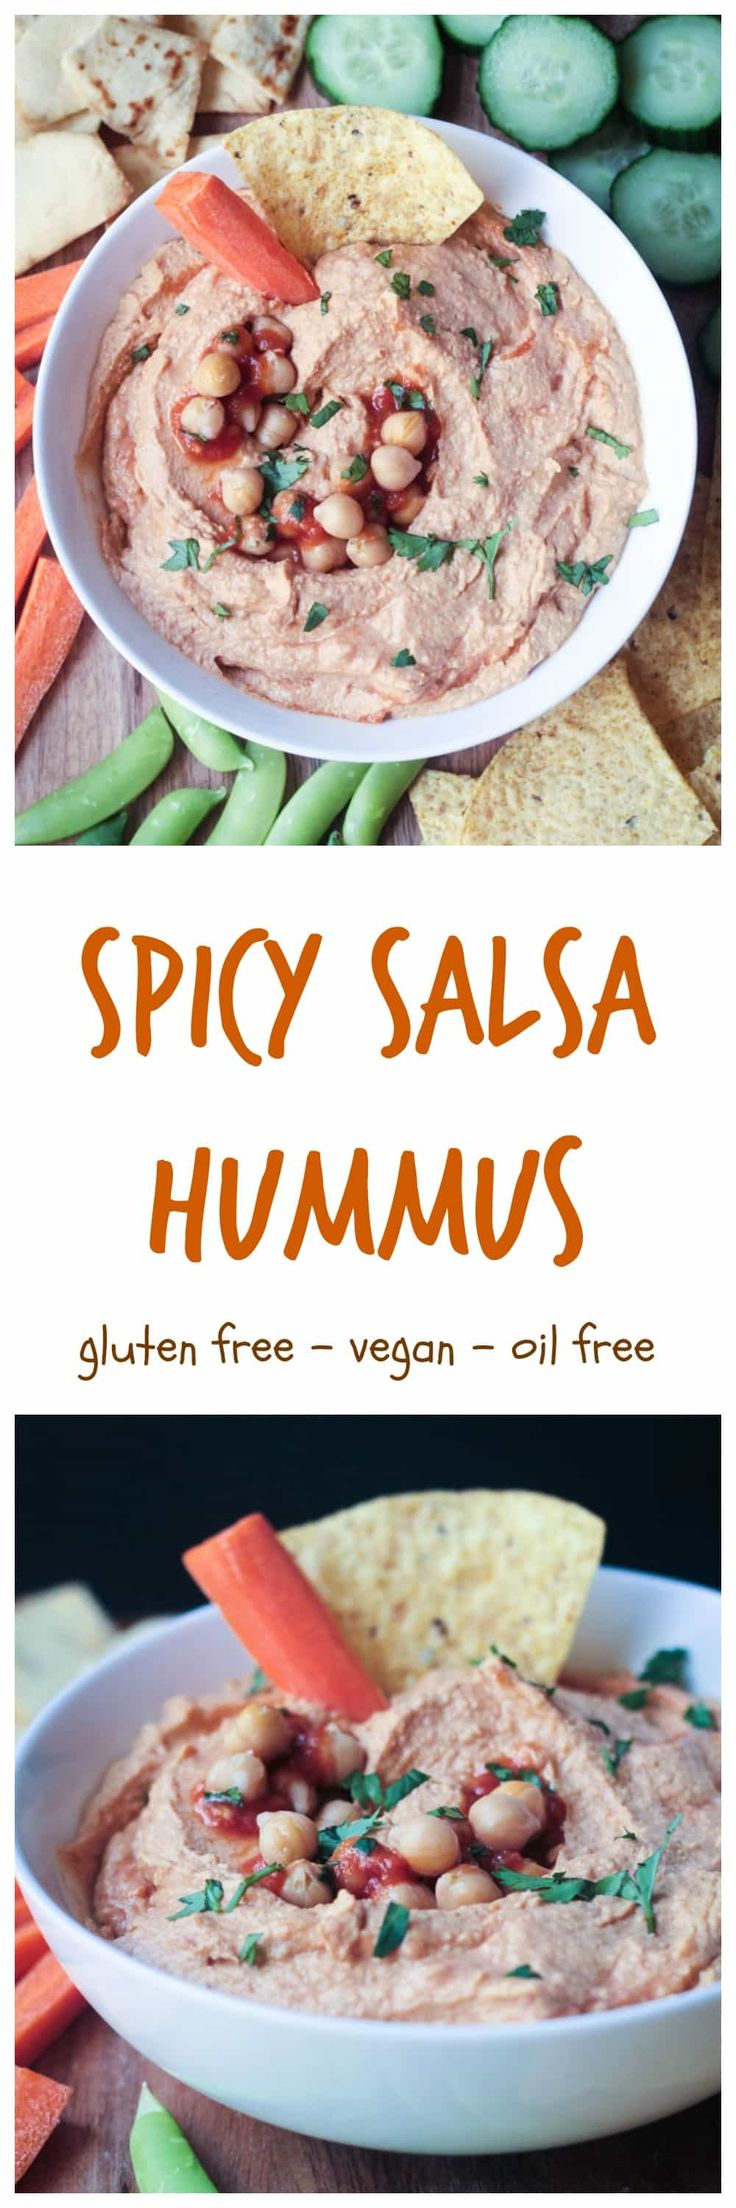 Spicy Salsa Hummus - a quick and easy dip recipe perfect for snacking or parties. It's delicious with tortilla chips, pretzels, crackers, or fresh raw veggies. Just a few ingredients and a couple minutes is all you need to throw this dairy free dip together. Oil free, gluten free, and vegan! via @veggieinspired